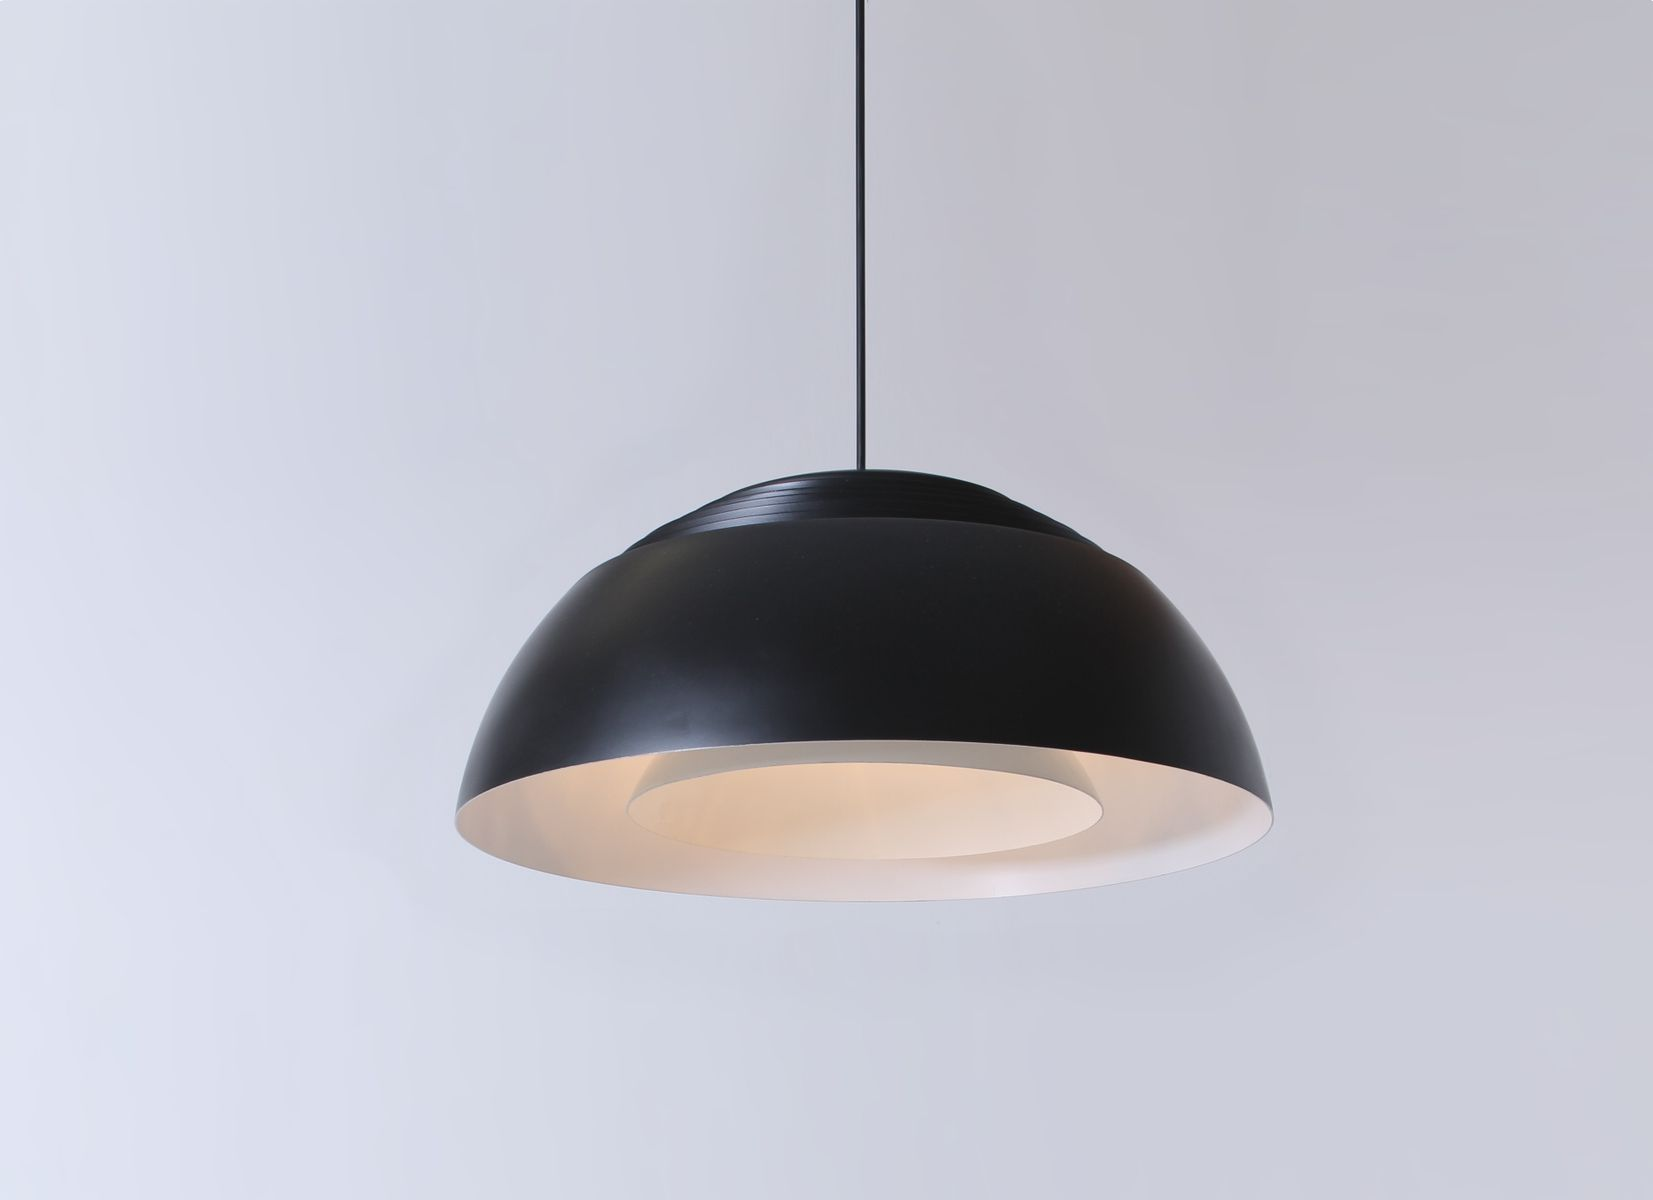 danish black royal pendant lamp by arne jacobsen for louis poulsen 1950s for sale at pamono. Black Bedroom Furniture Sets. Home Design Ideas